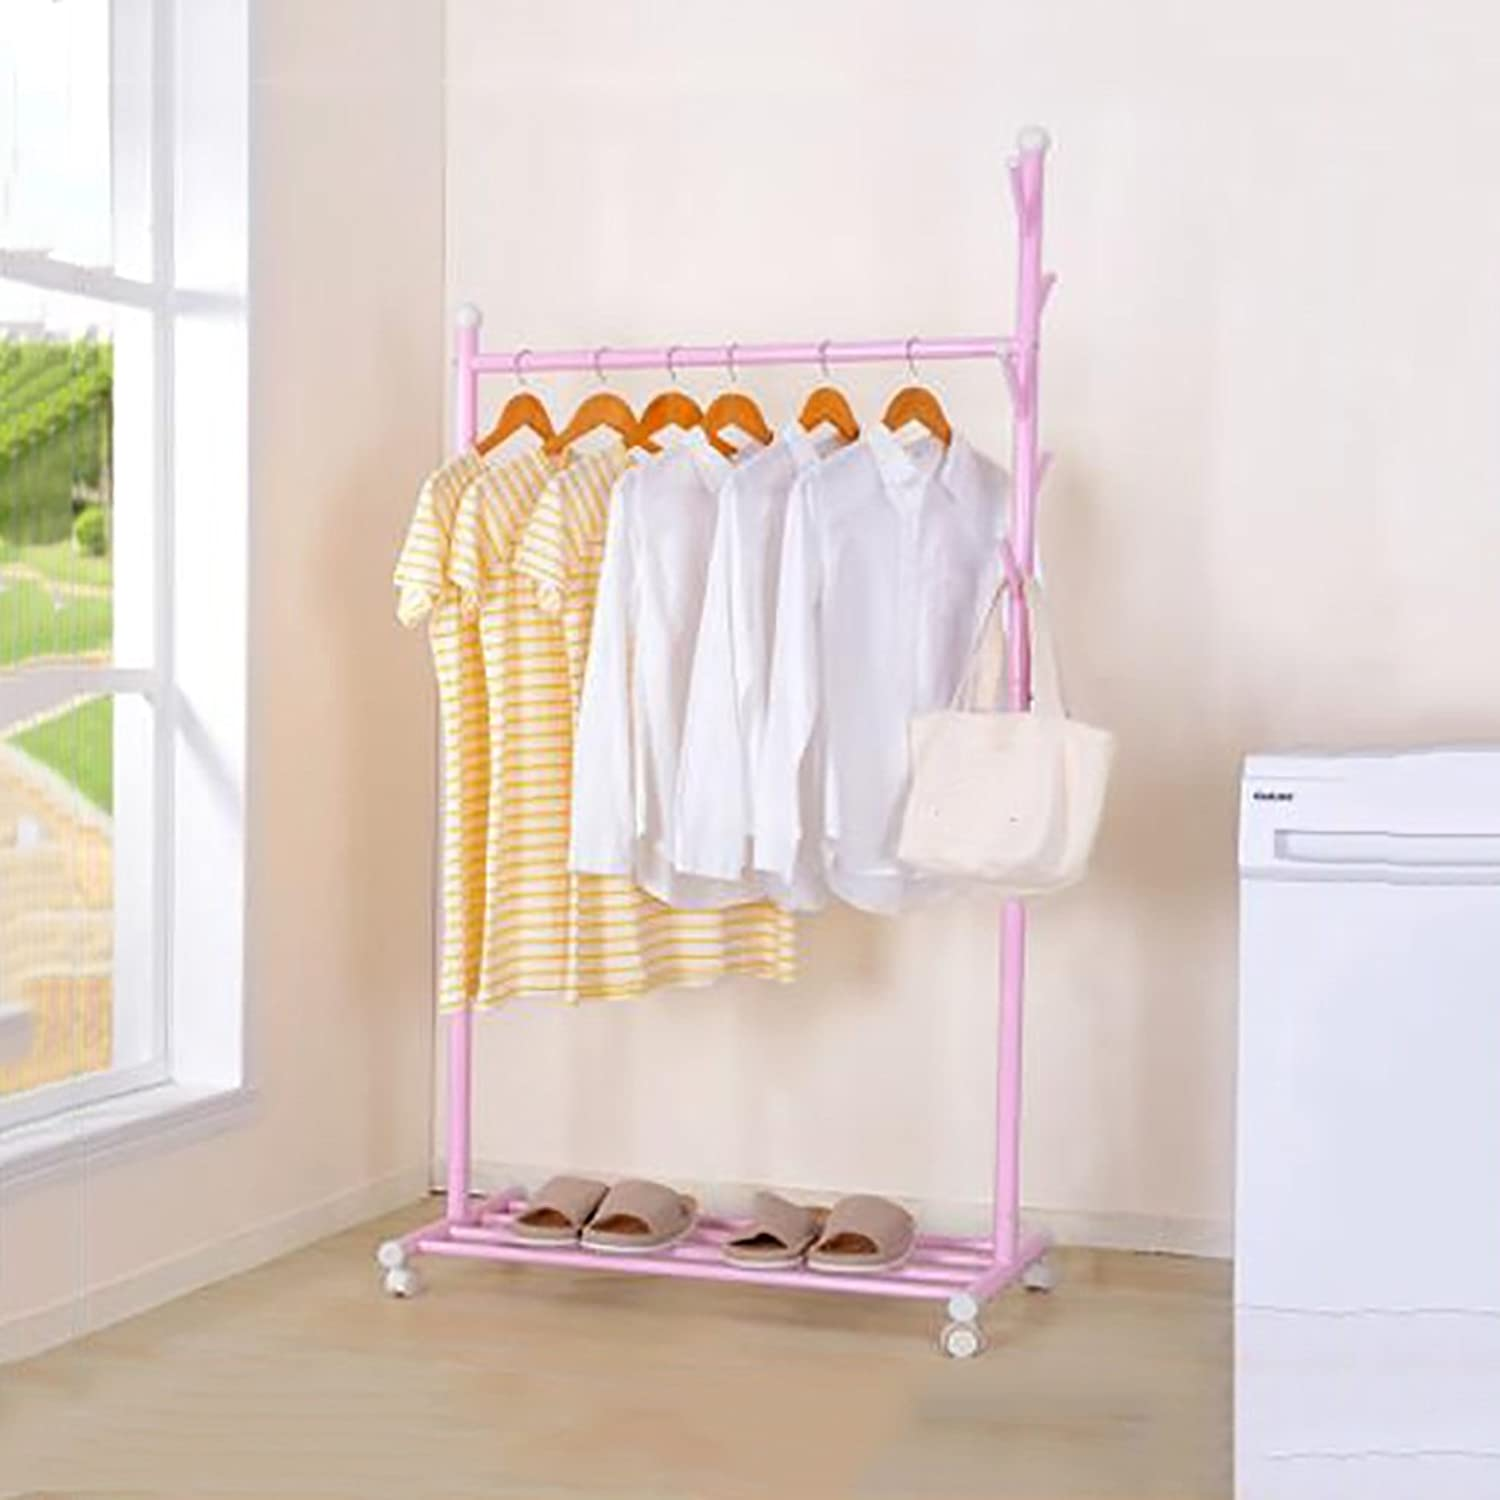 KKCF Floor Standing Coat Hat Rack Metal Movable Combination Type shoes Shelf 5 Hooks, 4 colors, 88  43  165cm (color   Pink)